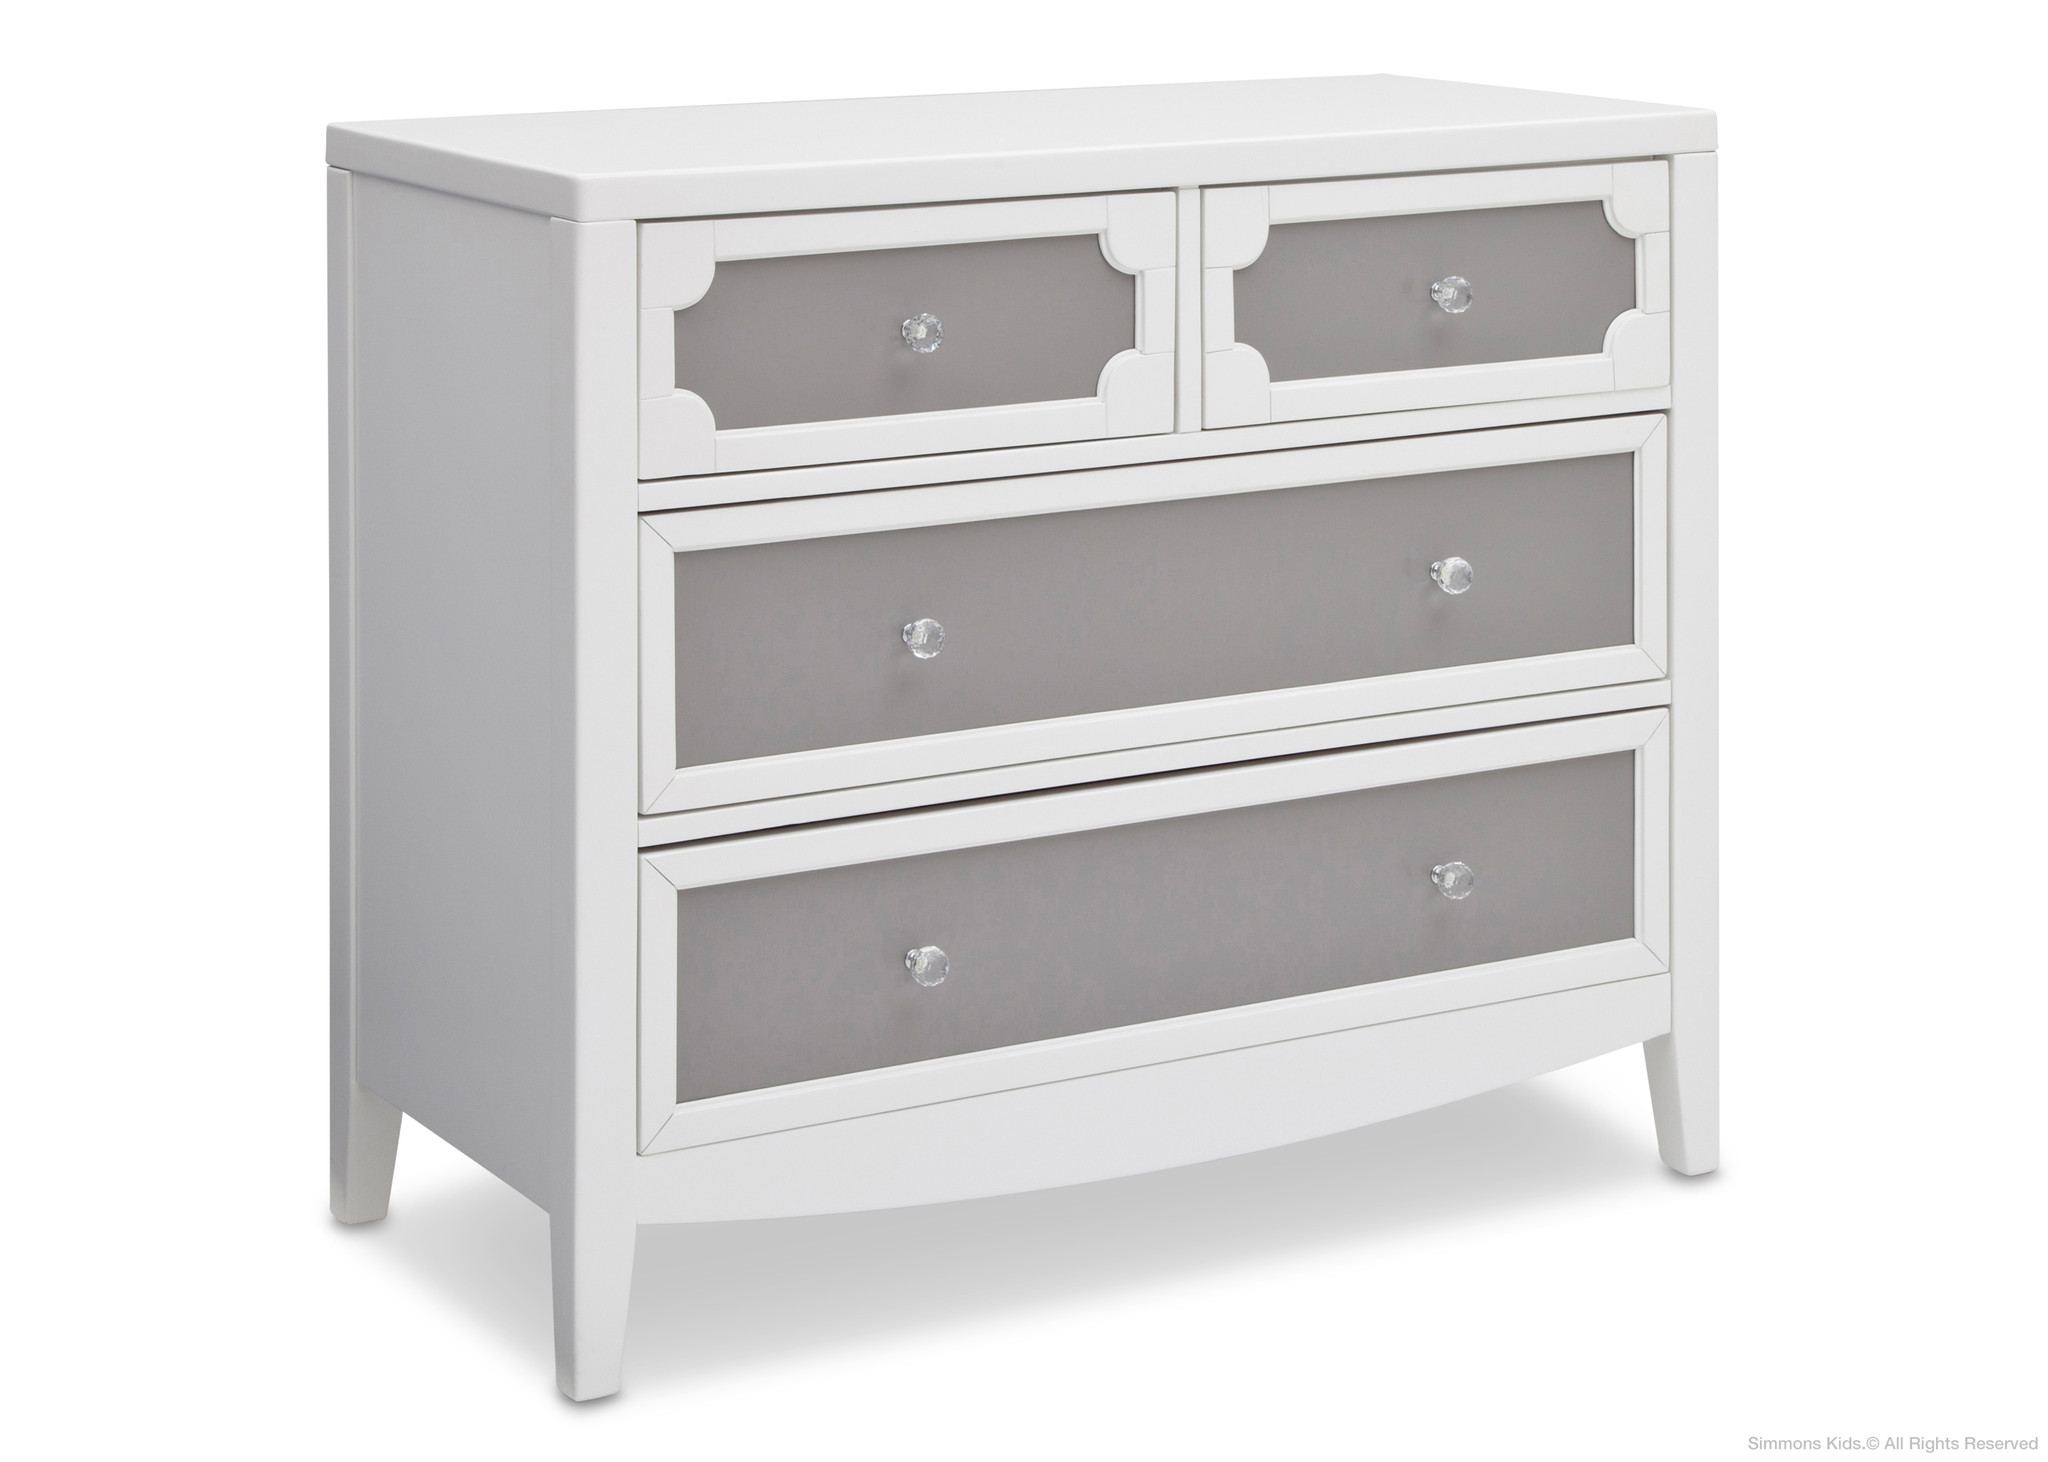 Wondrous 4 Drawer Dresser White And Gray Color Combine